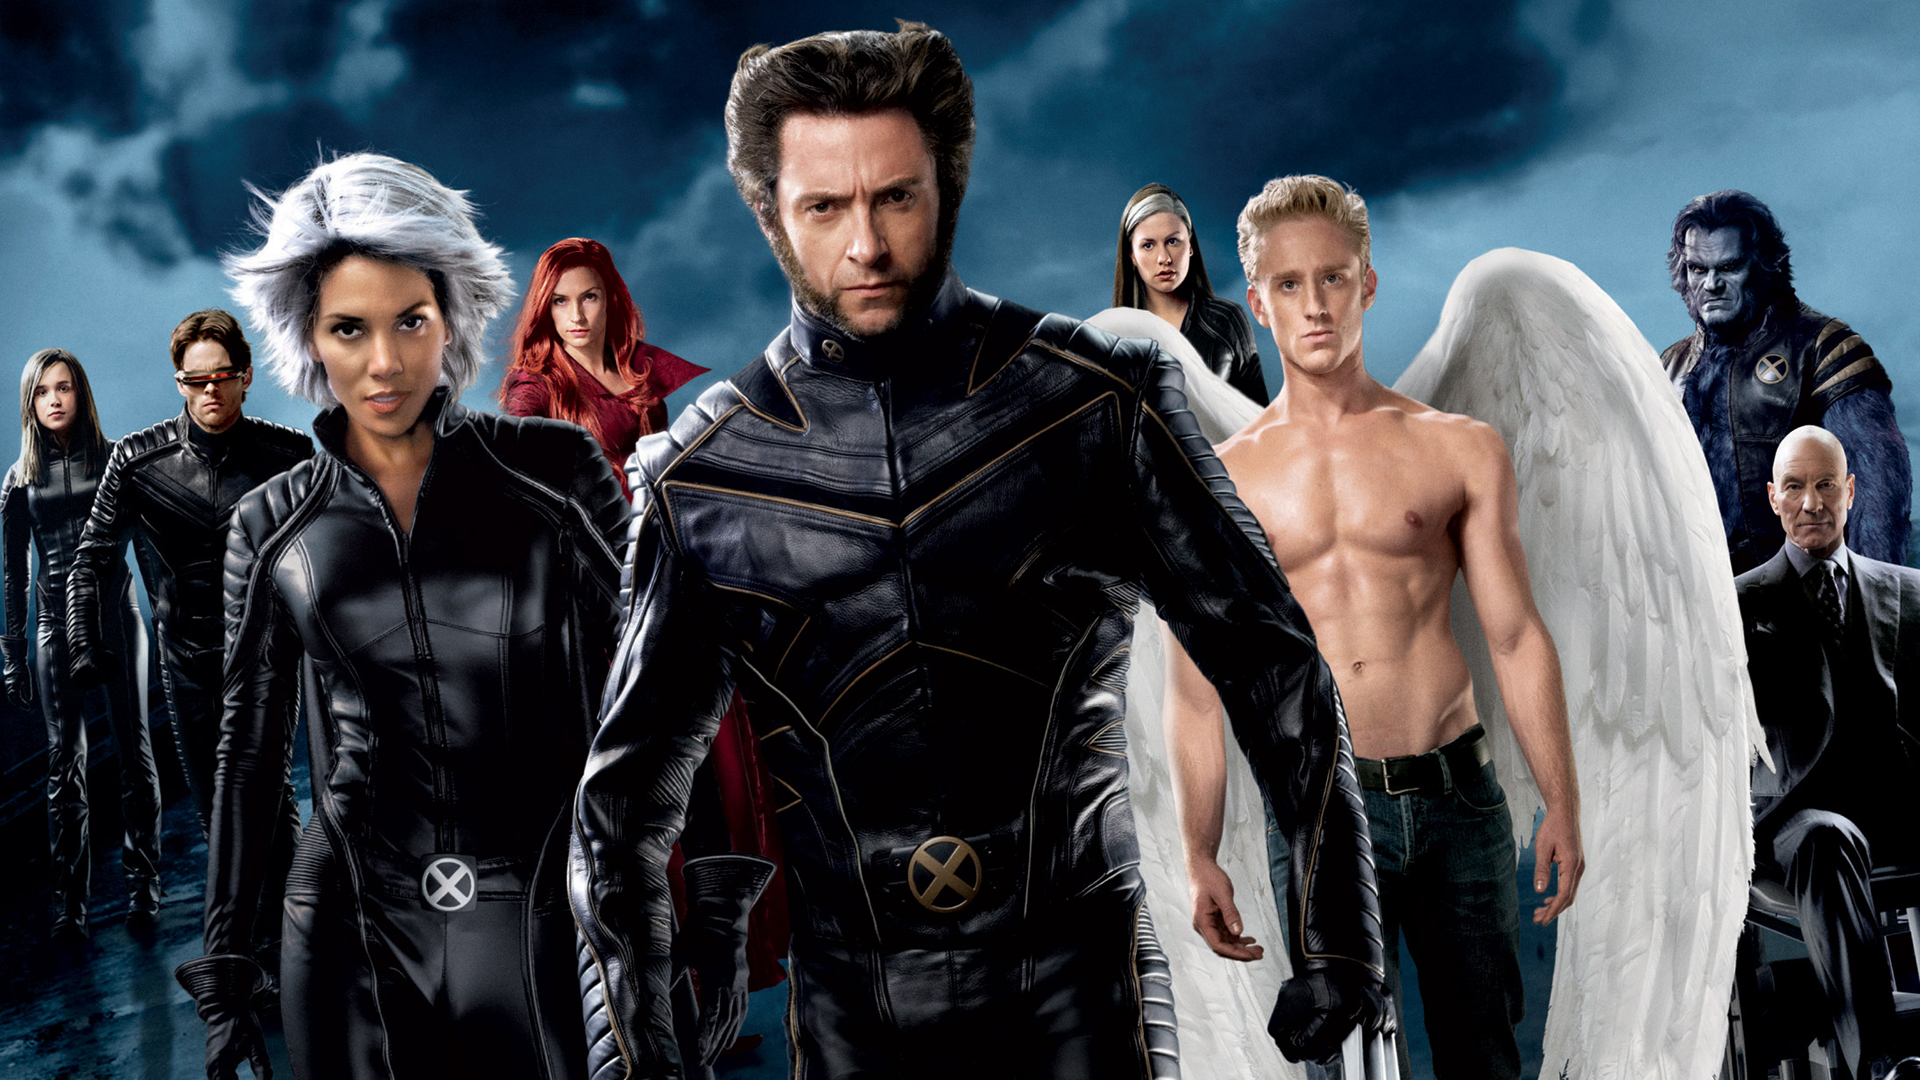 60] X Men Movie Wallpapers on WallpaperSafari 1920x1080